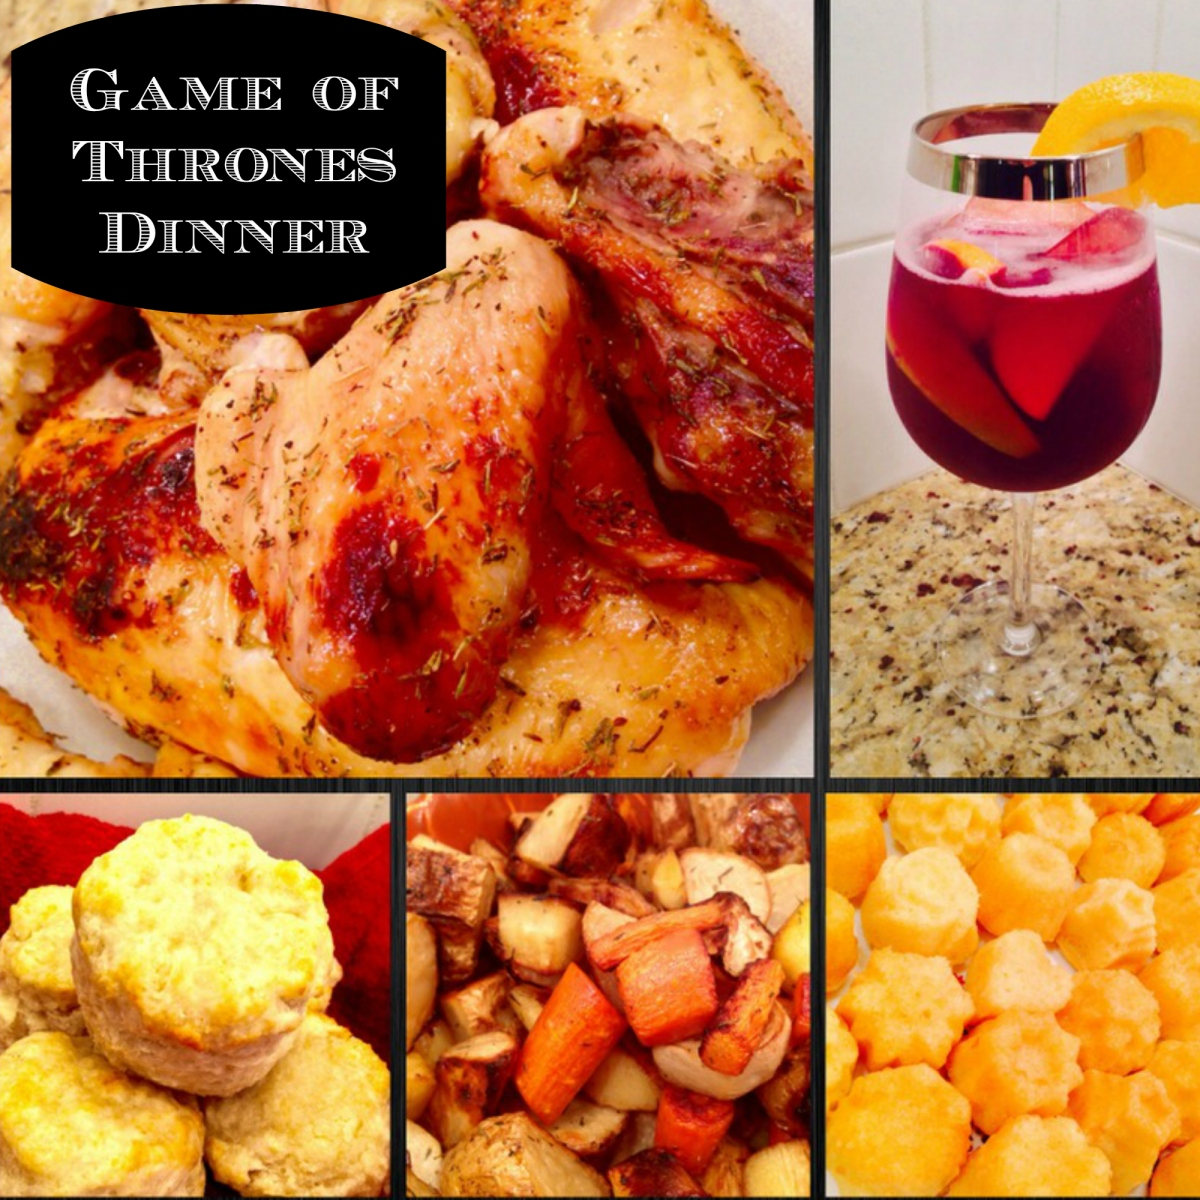 How To: Throw A Game Of Thrones Themed Dinner